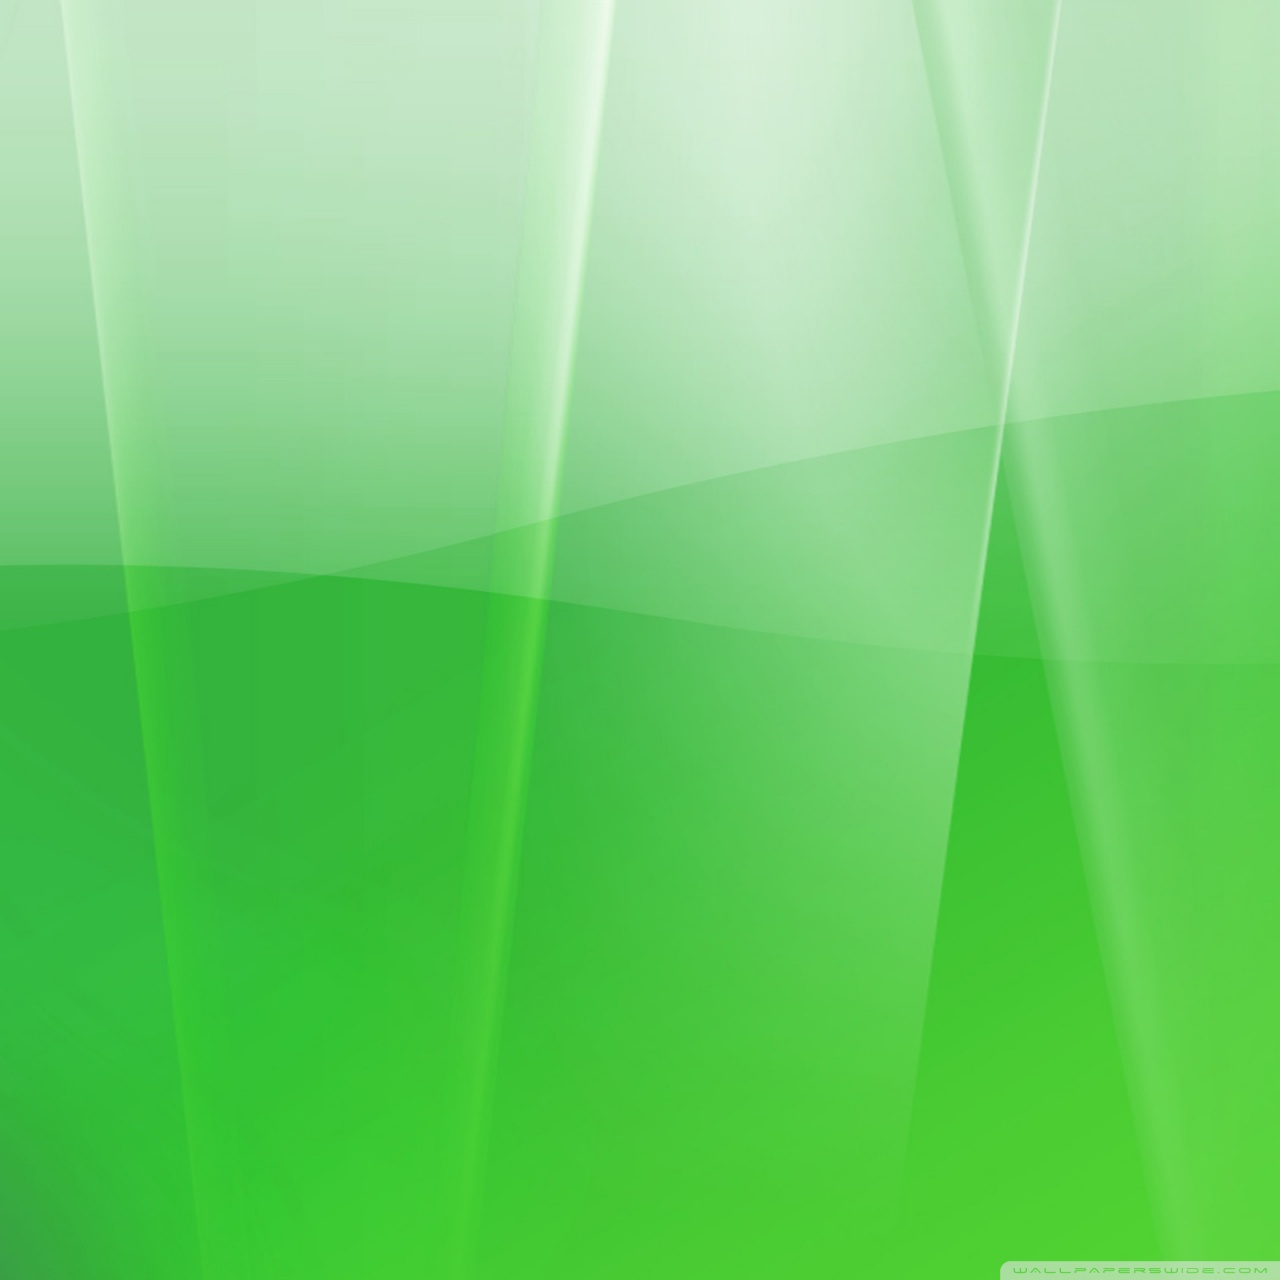 Collection of Android Background Wallpaper on HDWallpapers